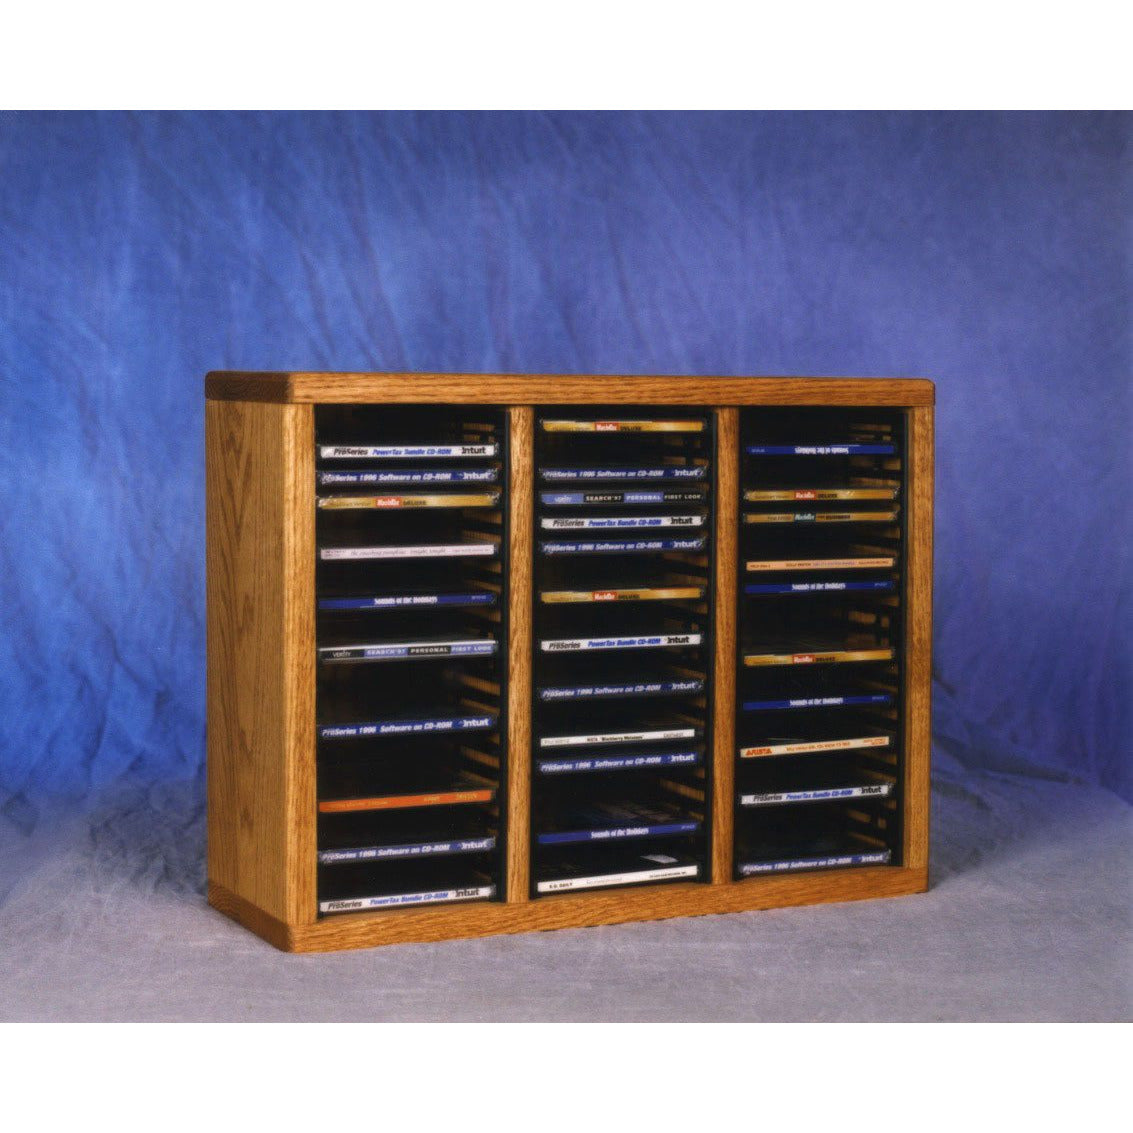 Model 309-1 CD Storage Rack